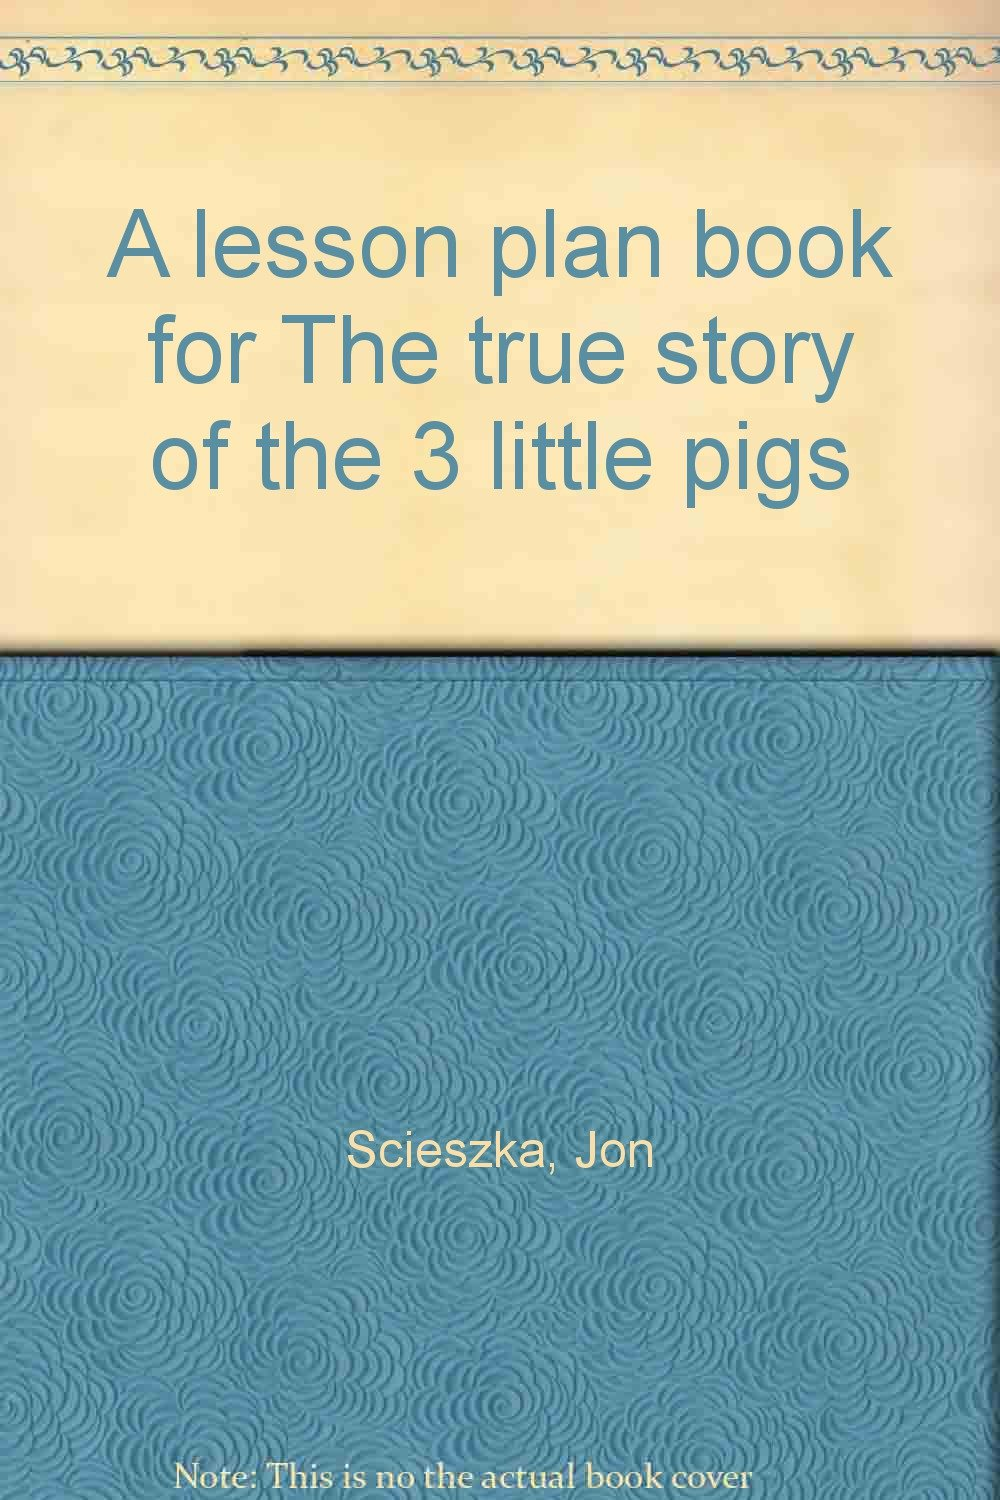 A lesson plan book for The true story of the 3 little pigs: Jon